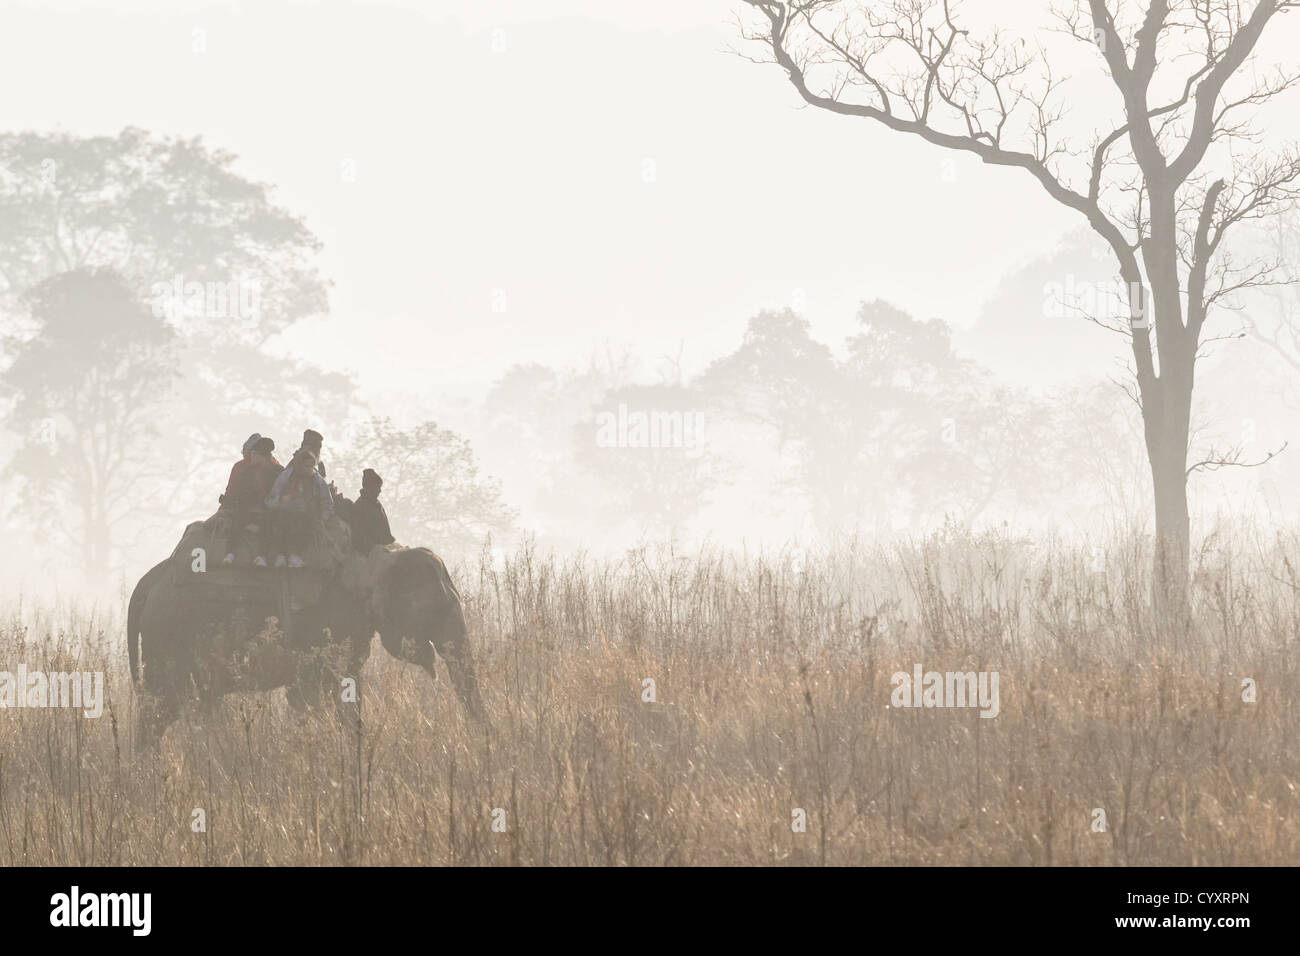 India, Uttarakhand, Mahout with tourists at Jim Corbett National Park - Stock Image